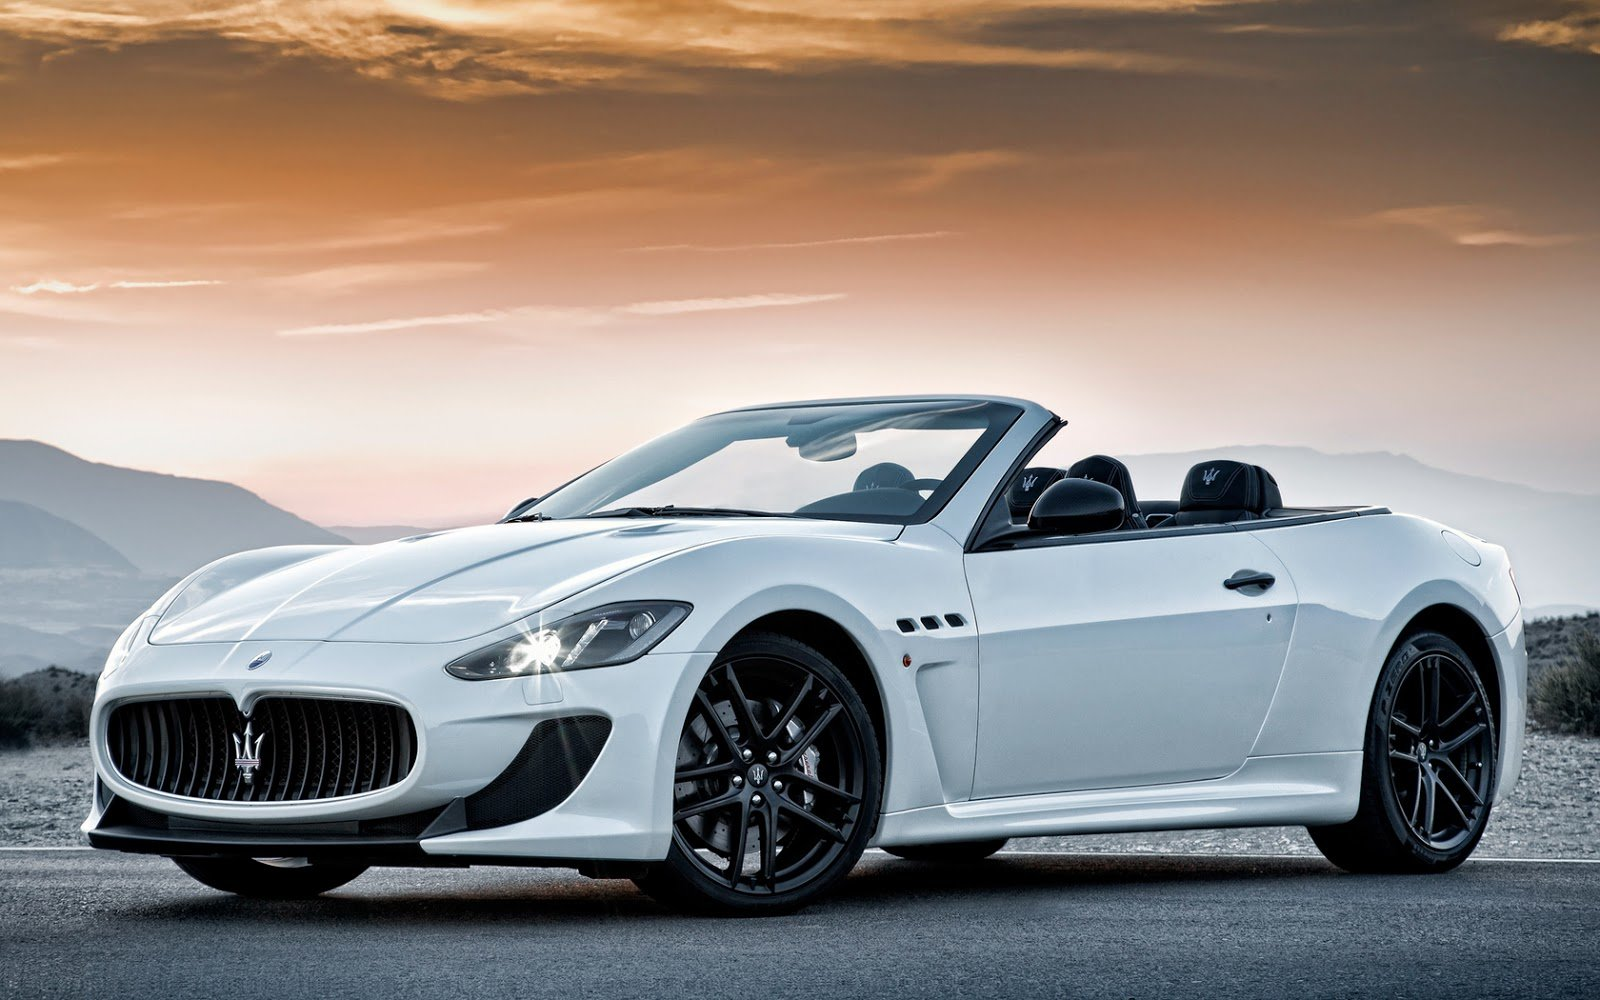 Latest Cars Hd Wallpapers Maserati Granturismo Best Hd Picture Free Download